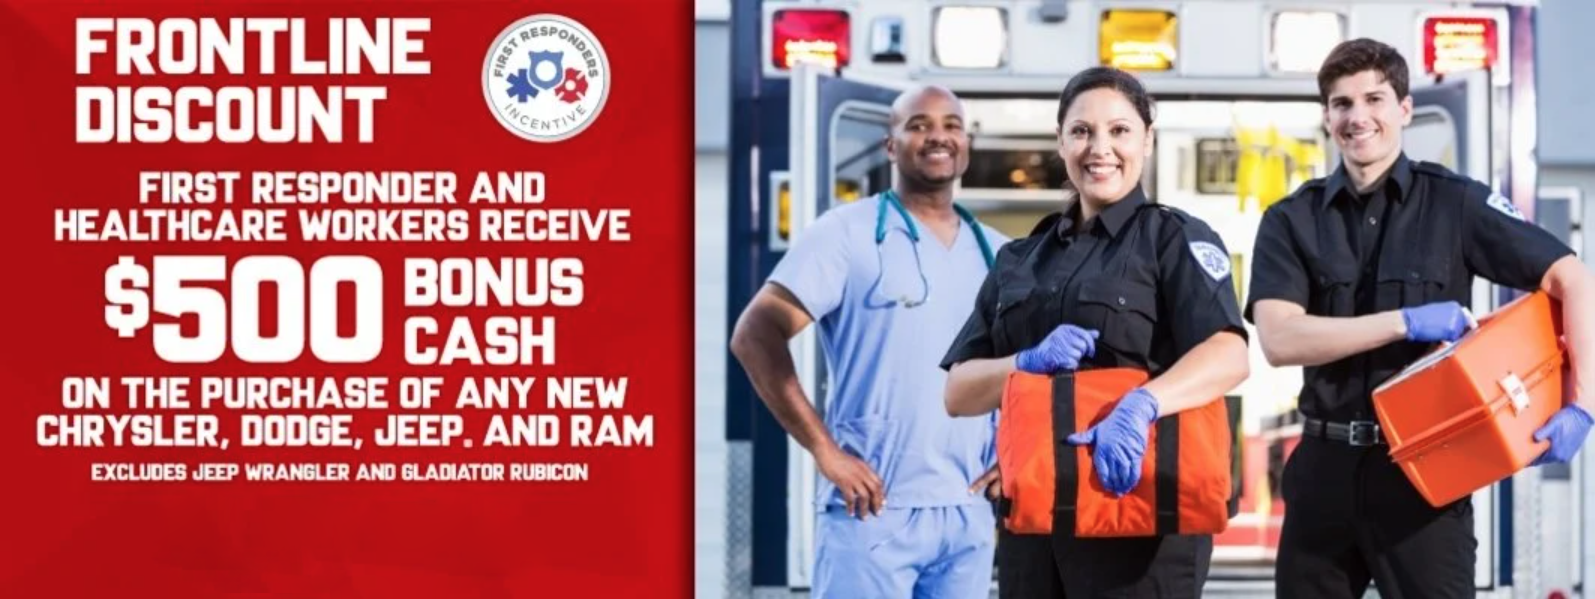 First responder discount at Eide Chrysler